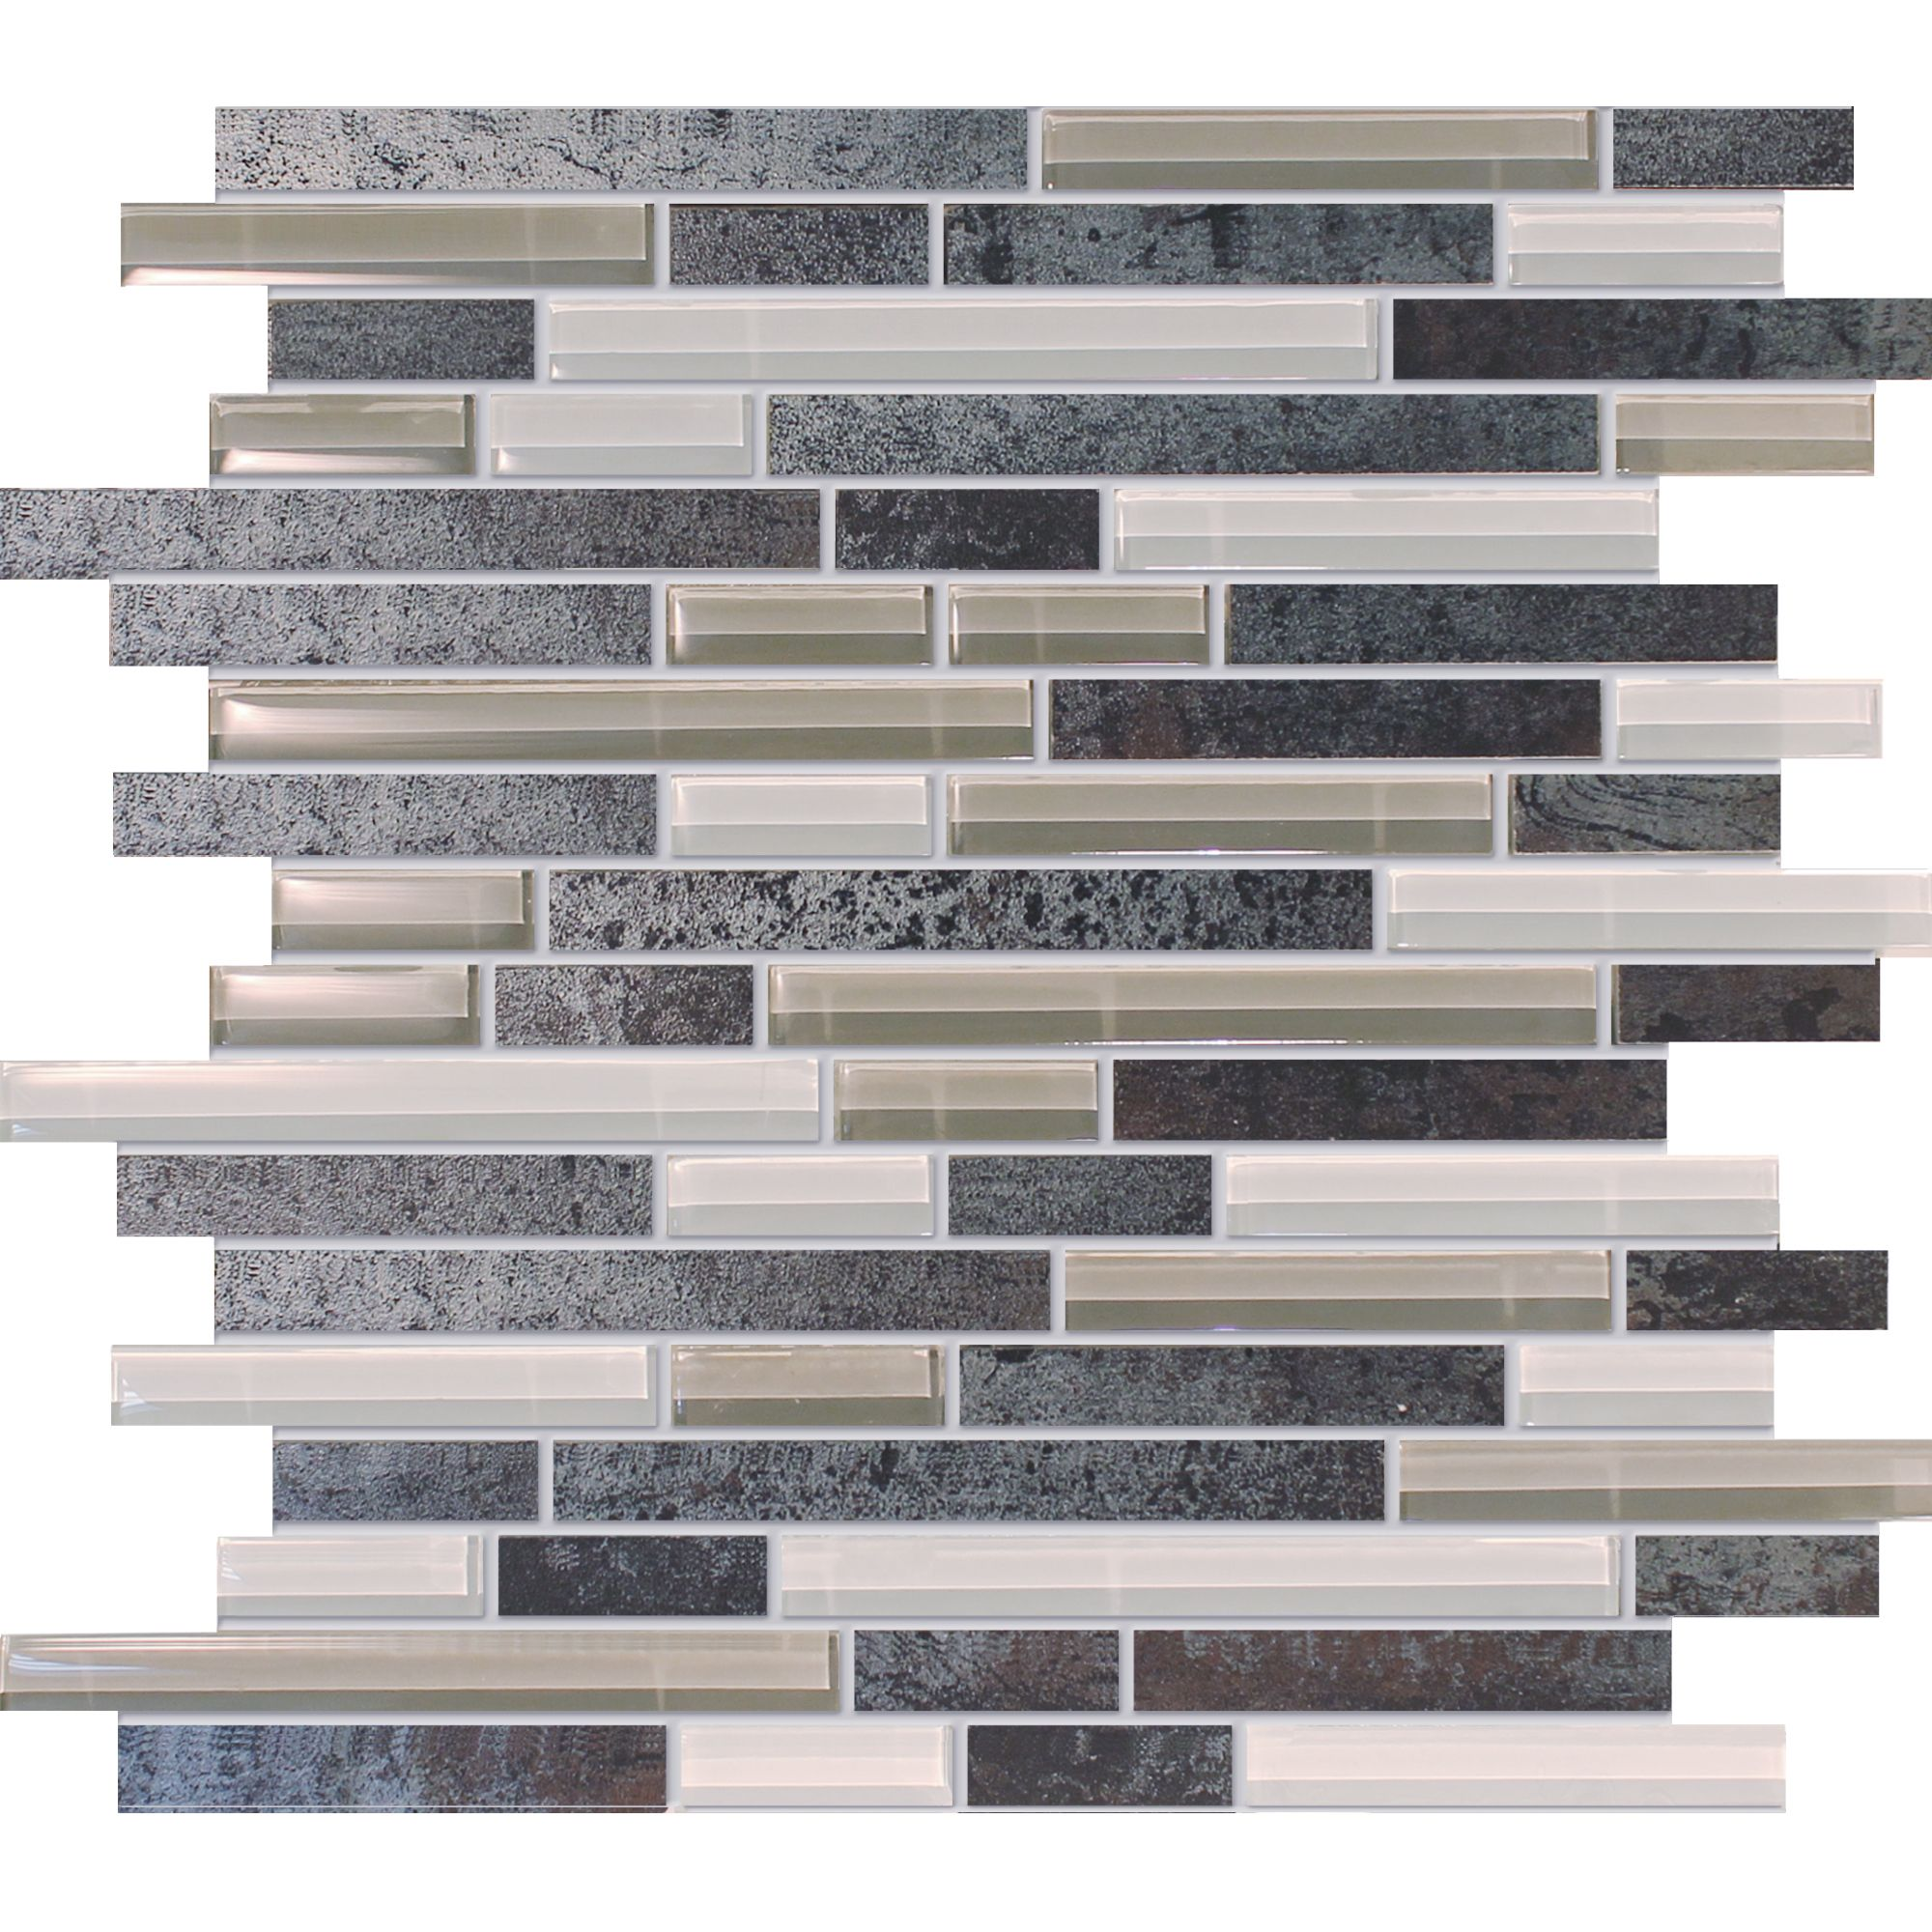 Metal Porcelain and Glass Random Strip Mosaic 12inx12in $8.99 s/f ...